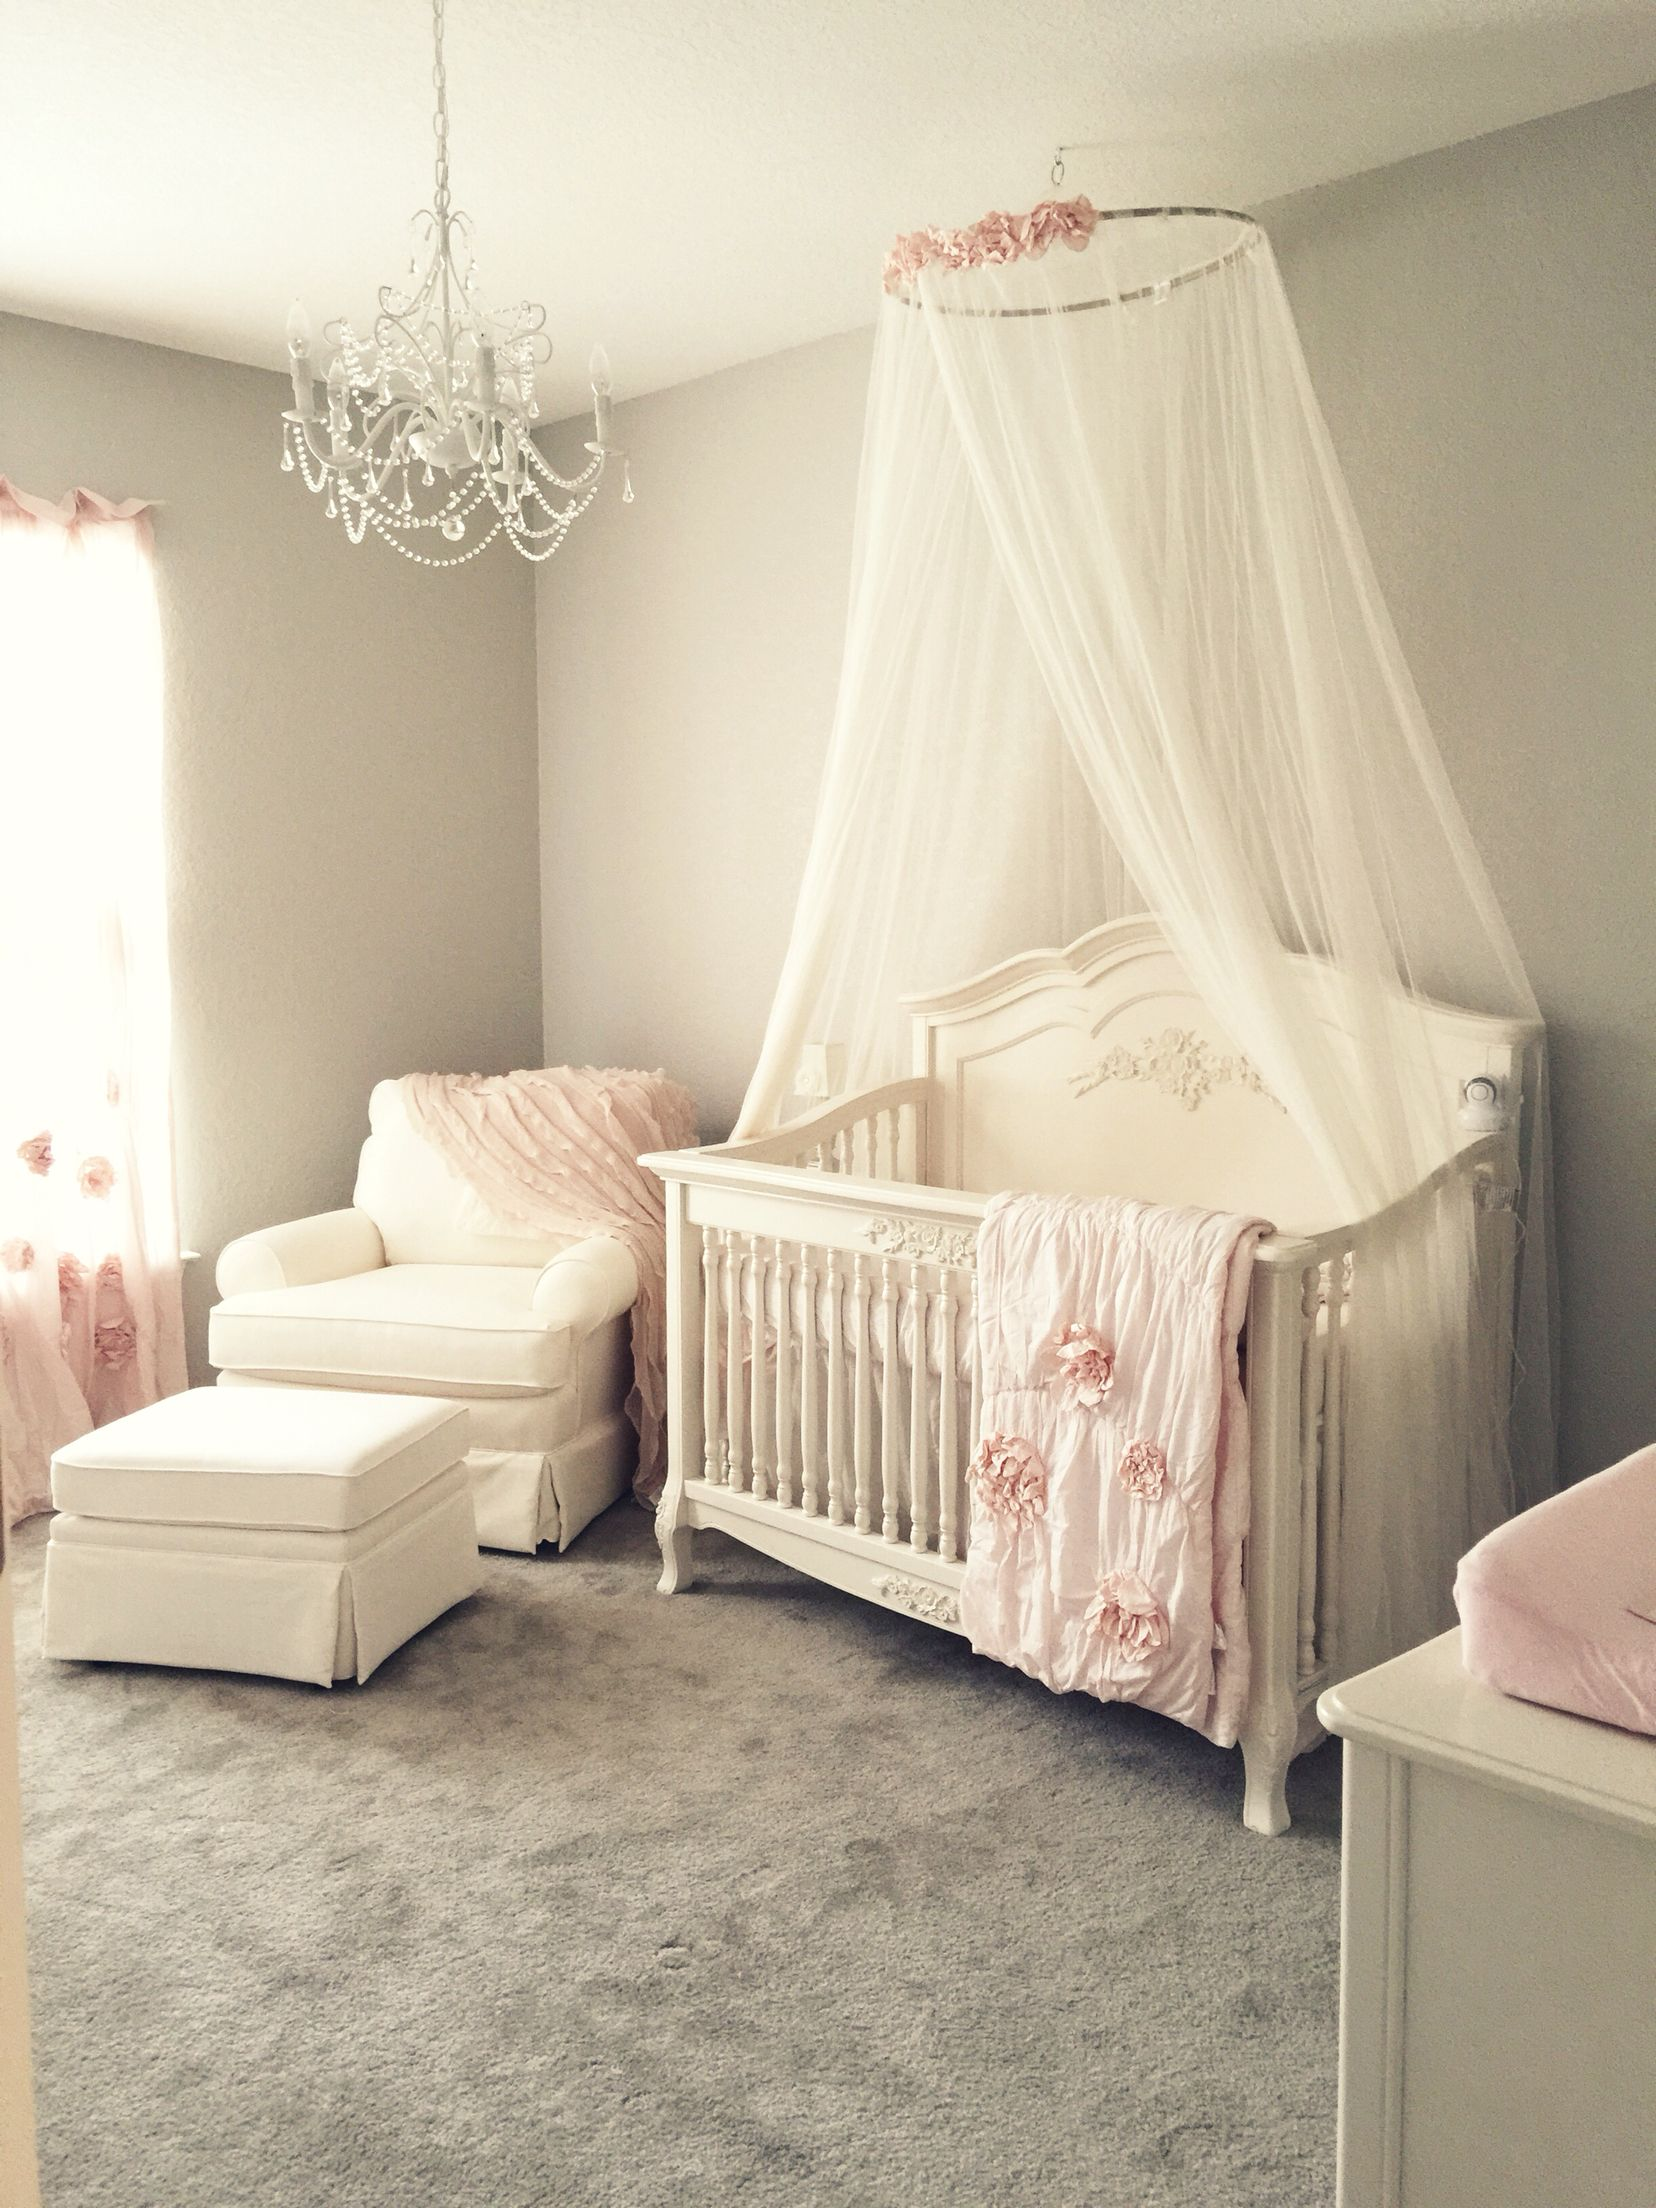 Girly pink blush nursery with chandelier ivory rocker and glider girly pink blush nursery with chandelier ivory rocker and glider ottoman and ivory crib canopy aloadofball